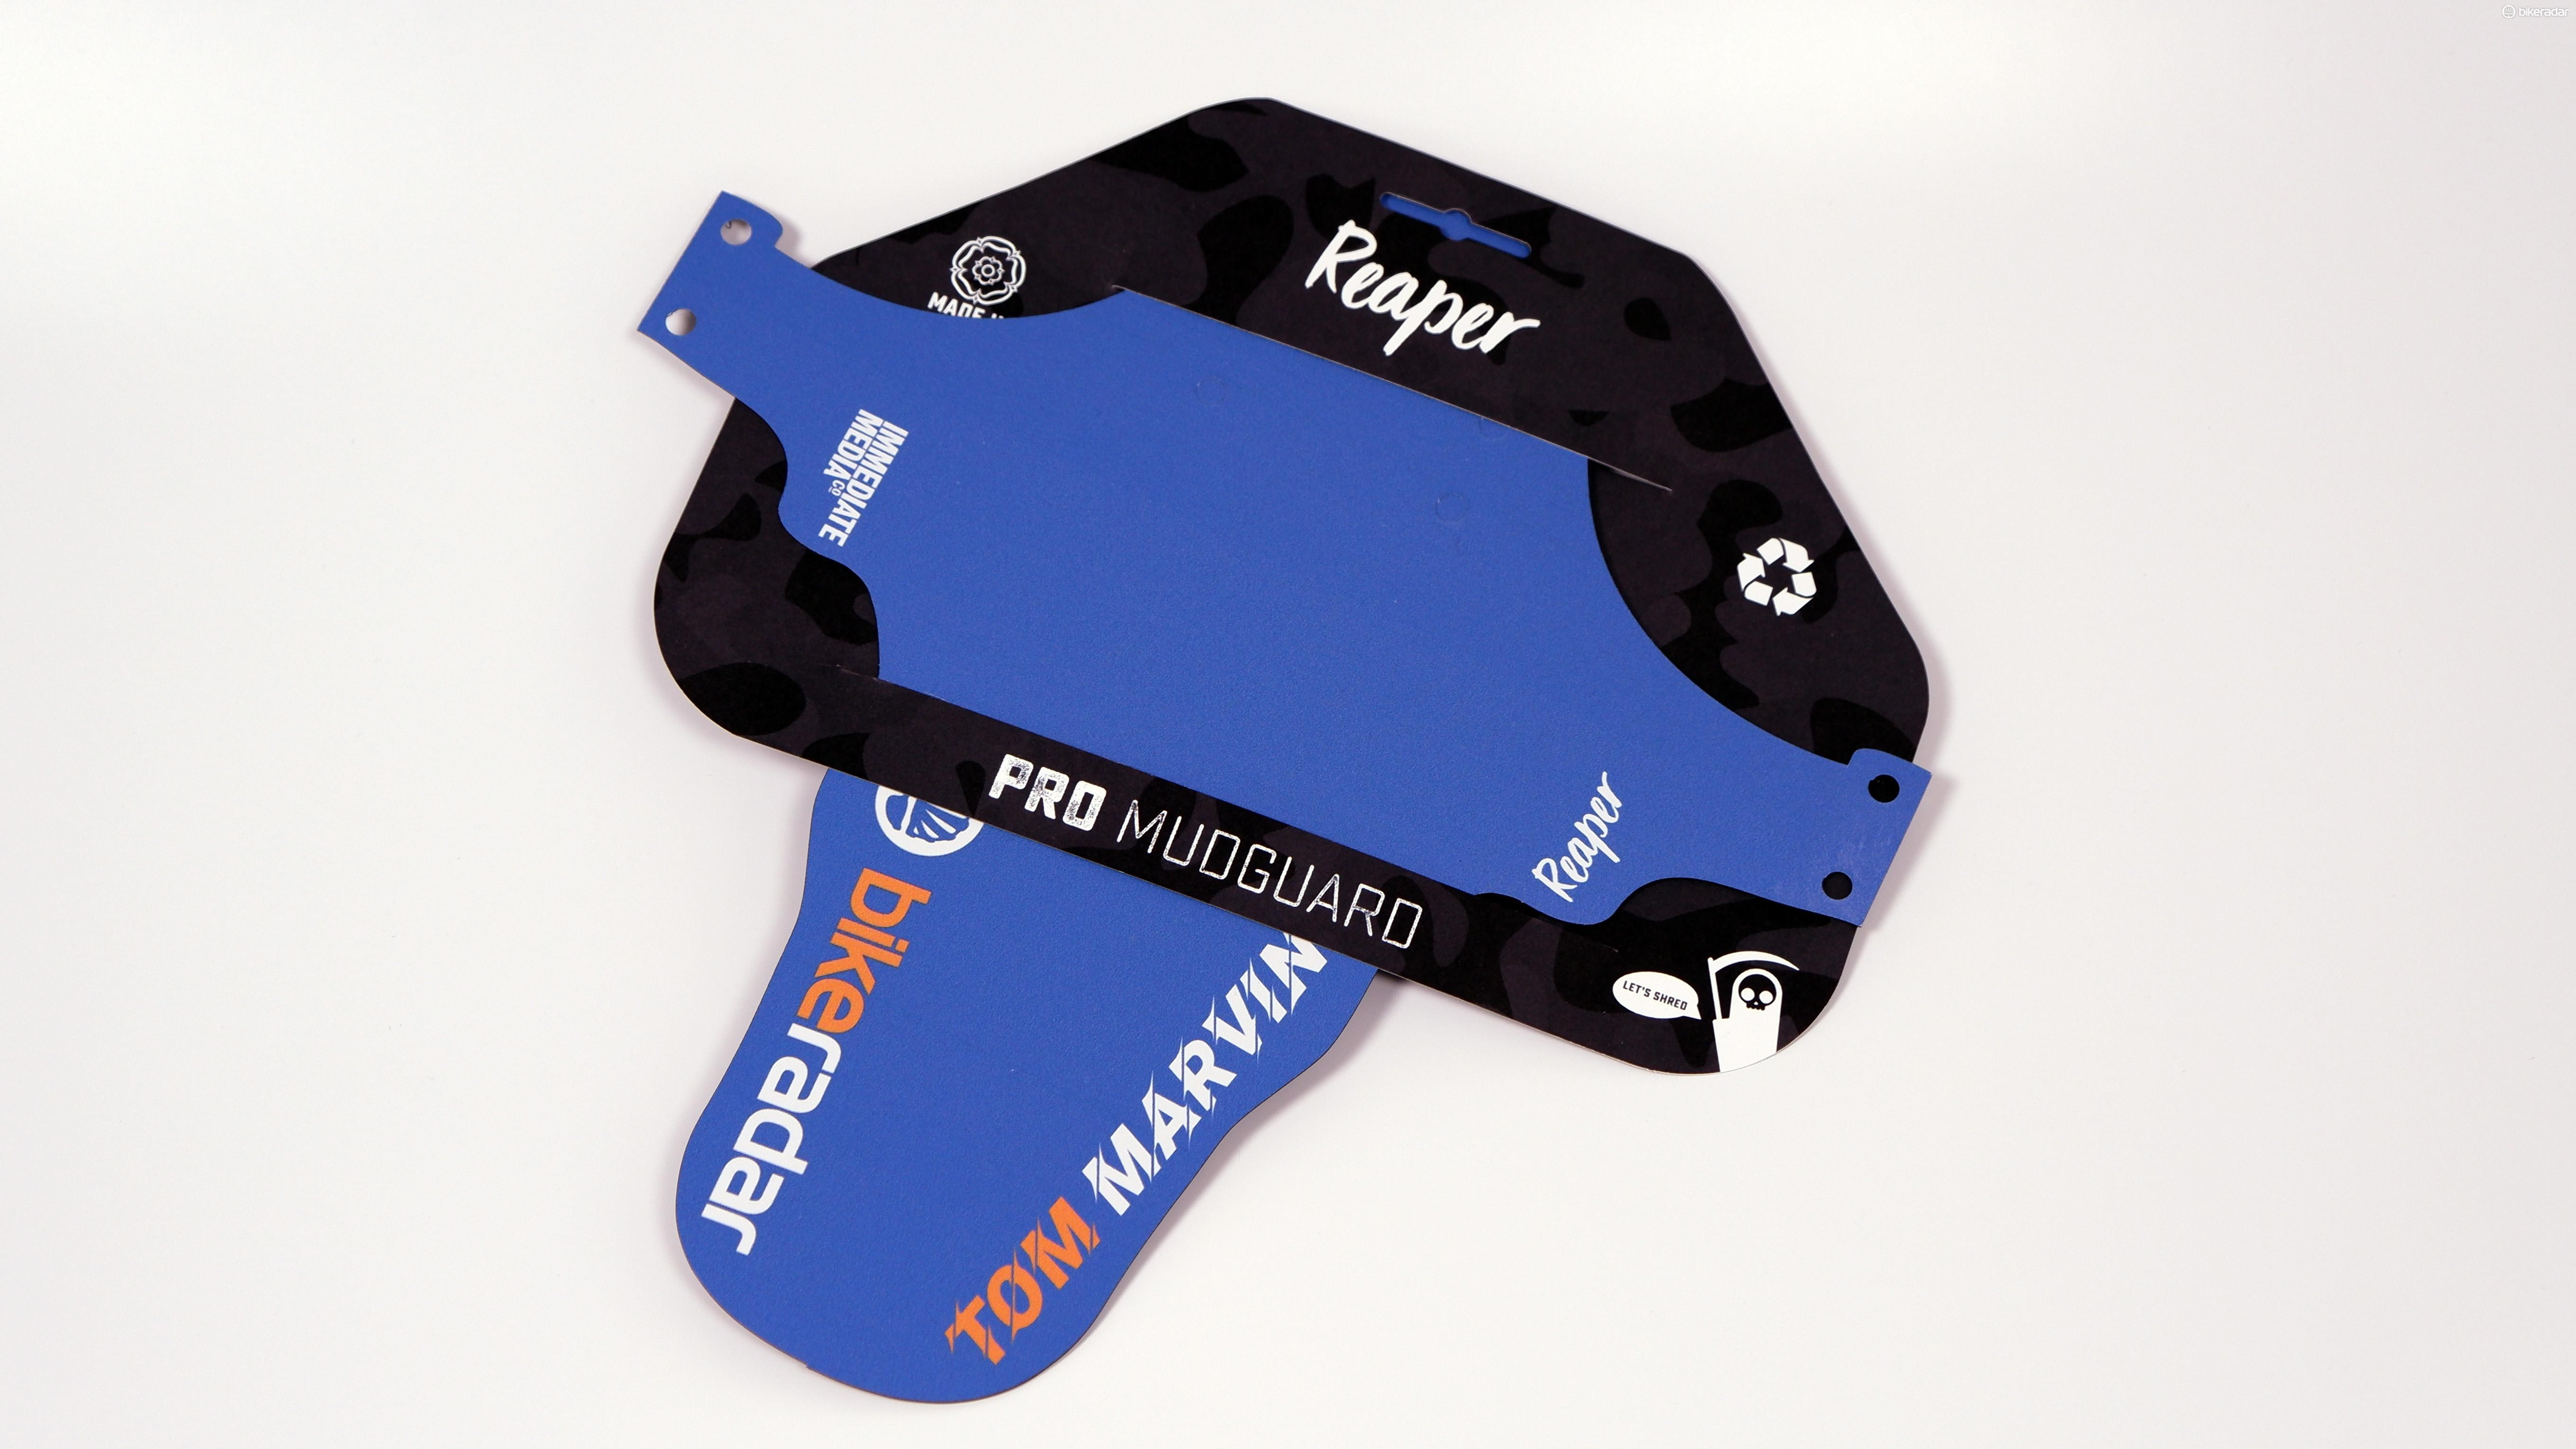 Tom Marvin's going to be the coolest kid on the trails with his custom Reaper mudguard